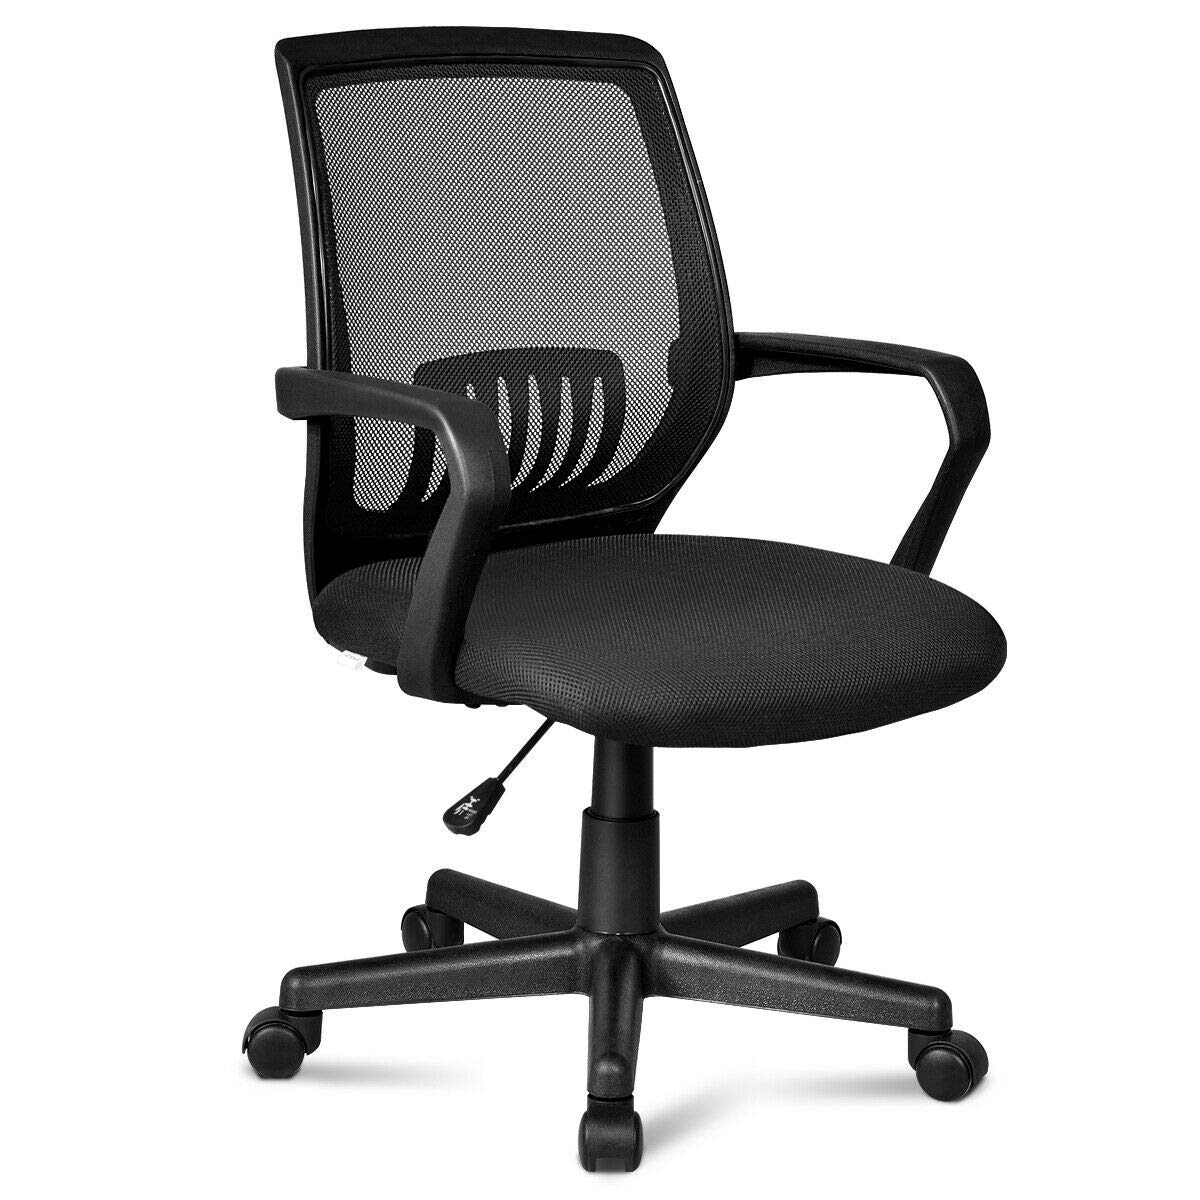 Giantex Office Chair Mid-Back Mesh Chair with Armrest, Ergonomic Desk Chair Lumbar Support Sponge Cushion Executive Adjustable Stool Rolling Swivel Chair for Back Pain 22.5 x 22.5 x 40